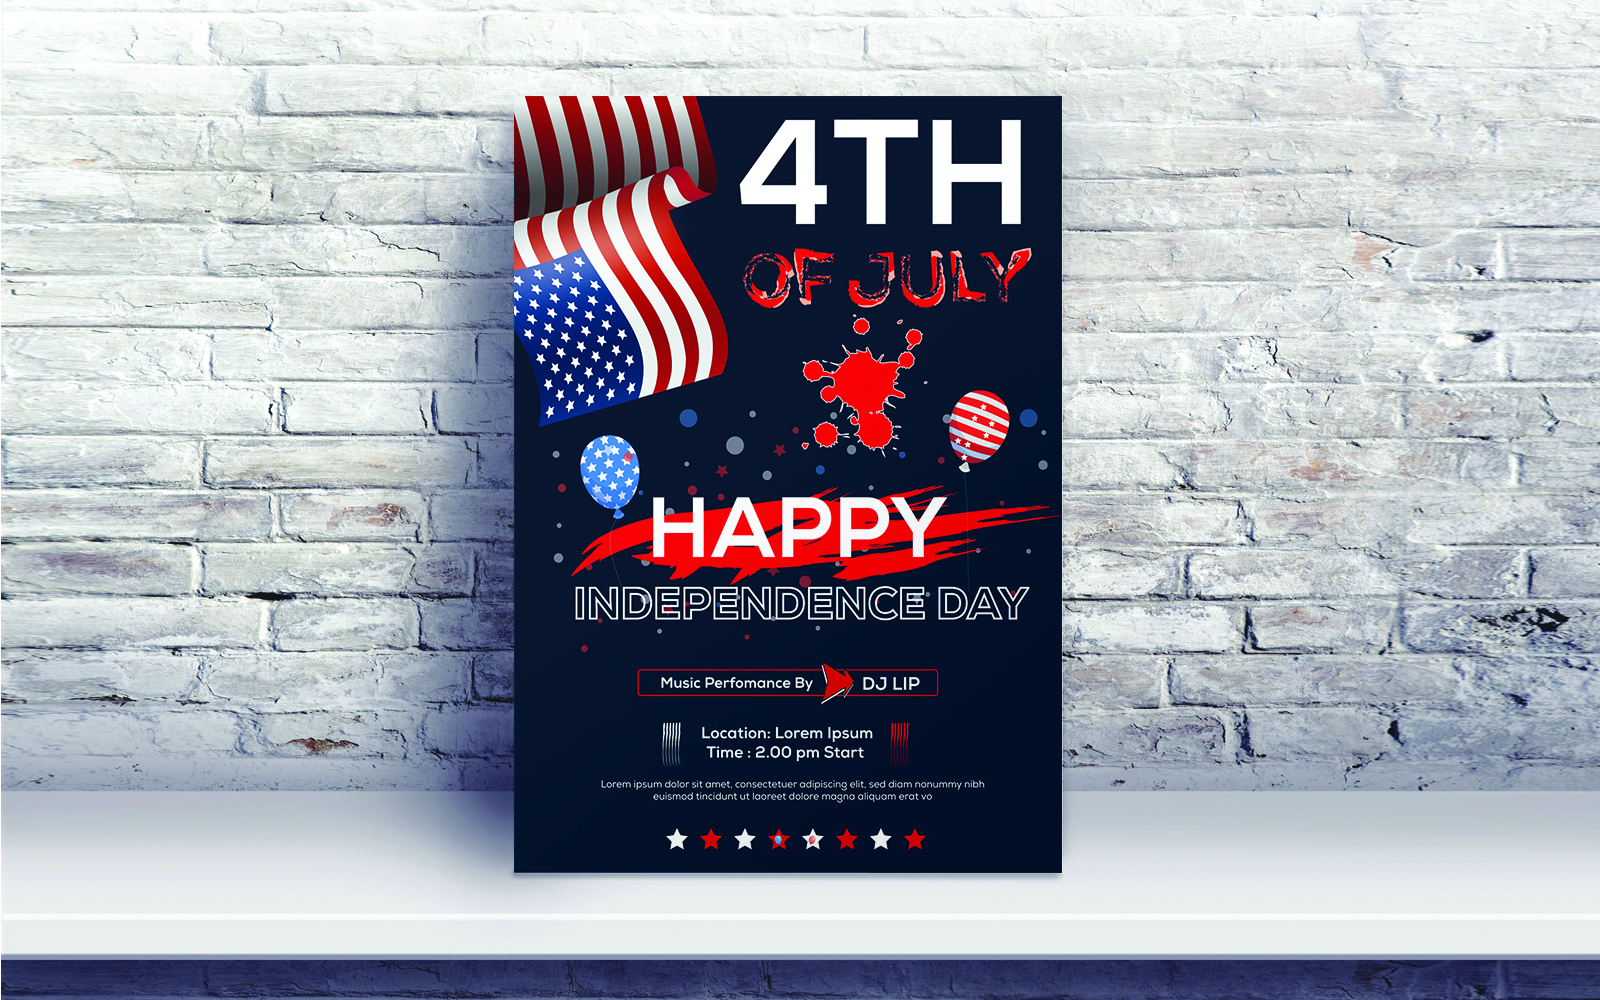 4th of July independence day Celebration Corporate Identity Template